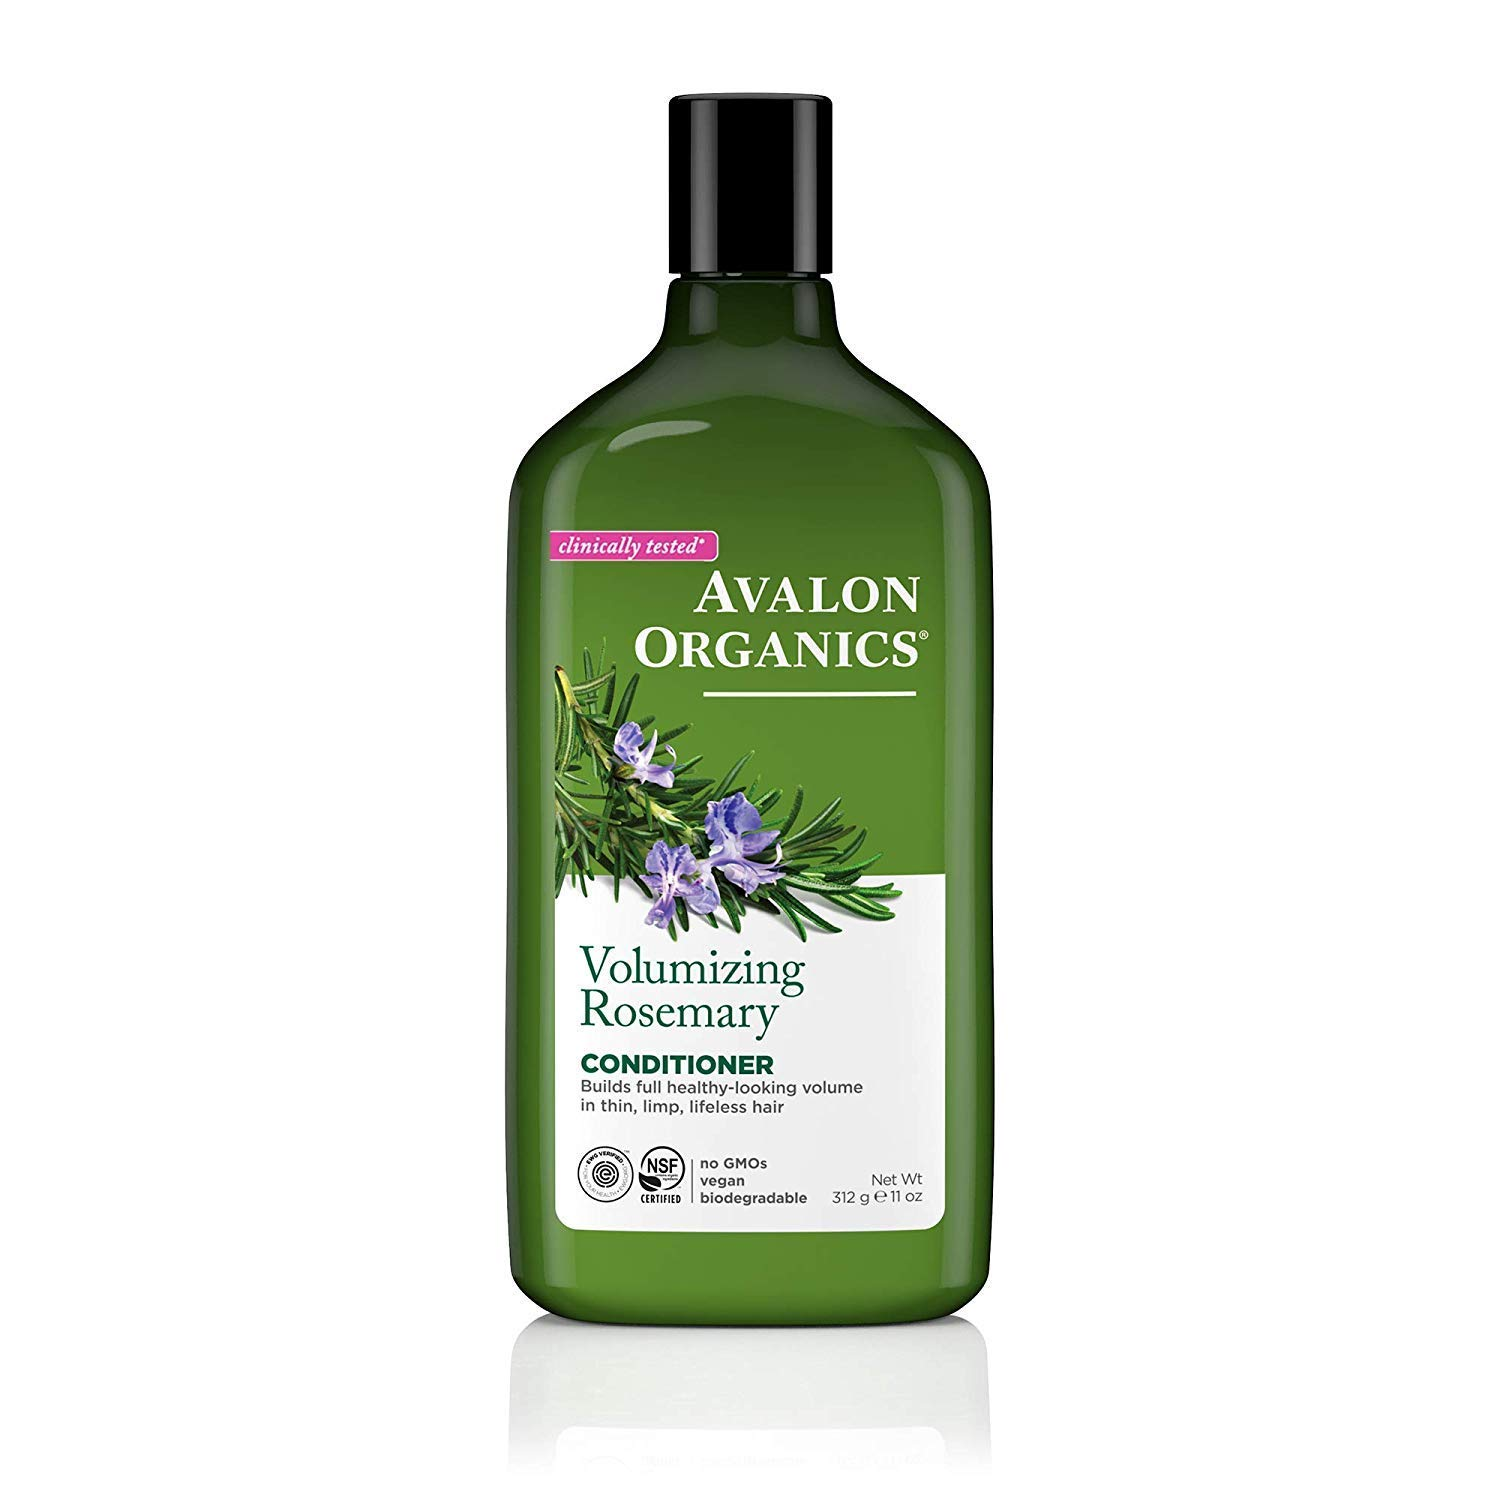 Avalon Organics Conditioner, Volumizing Rosemary, 11 Oz